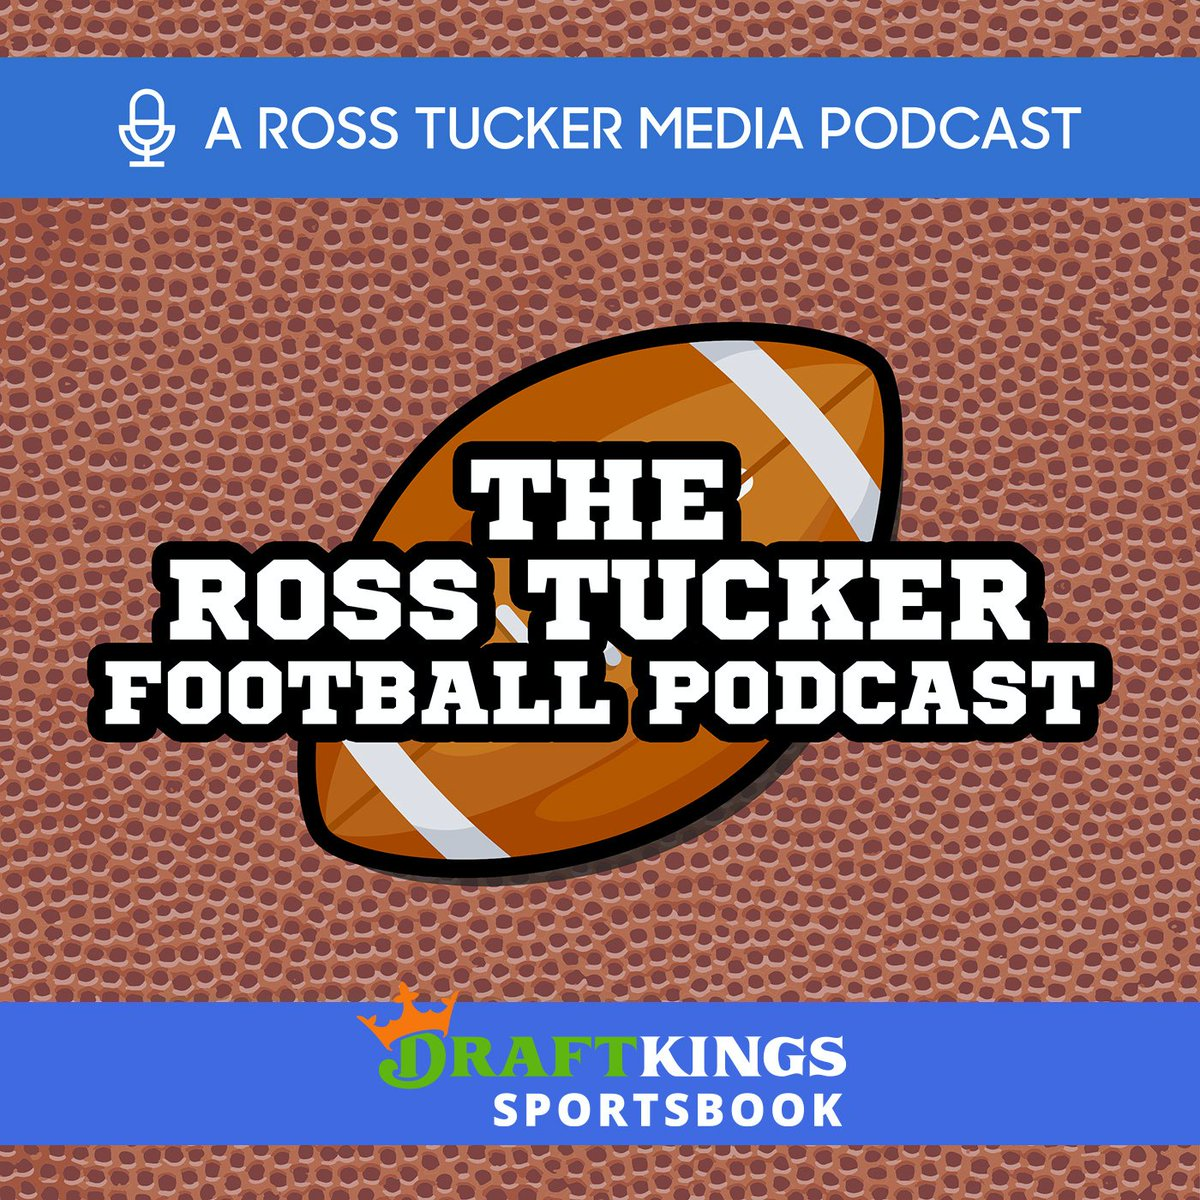 NBC's @peter_king is on today's podcast talking with @RossTuckerNFL about:  - Zach Wilson / DoorDash  - Russell Wilson vs the Seattle Seahawks  - The Brady Patriots divorce  - The NFL's possible 17 game schedule   https://t.co/mjrb0qYgie https://t.co/Na0B215DLi